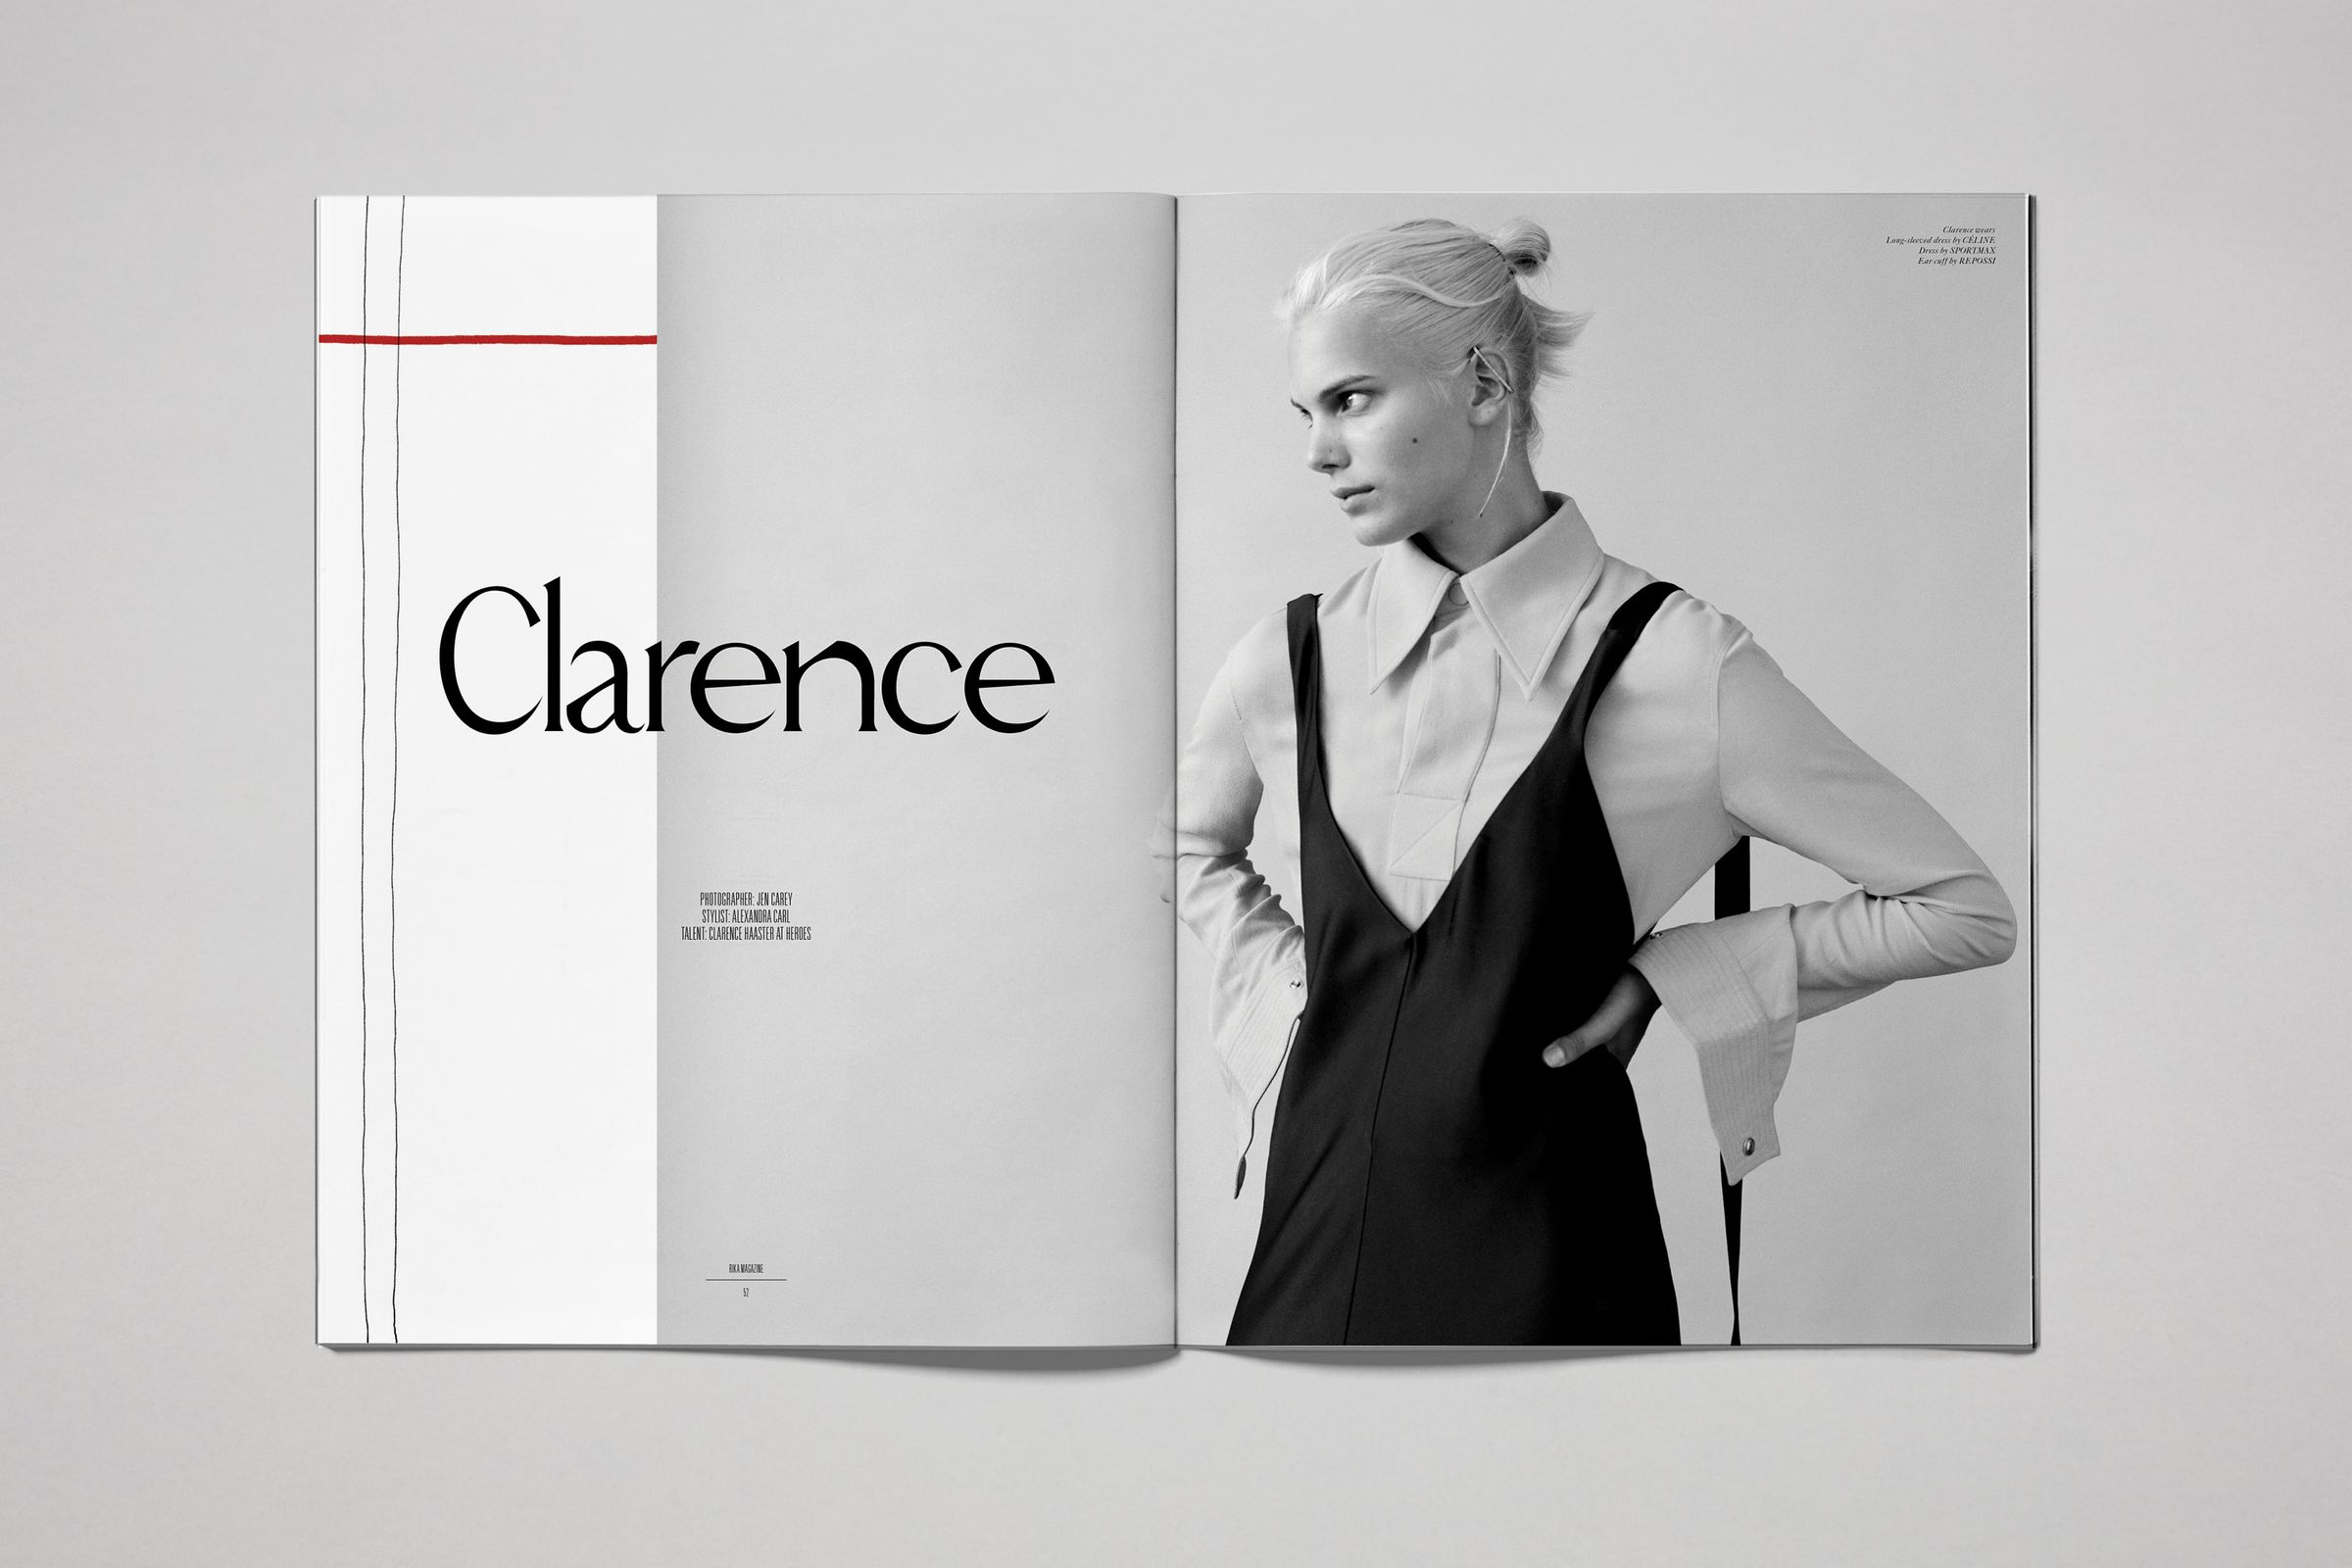 Rika Magazine issue no. 15 Clarence Haaster photographed by Jen Carey